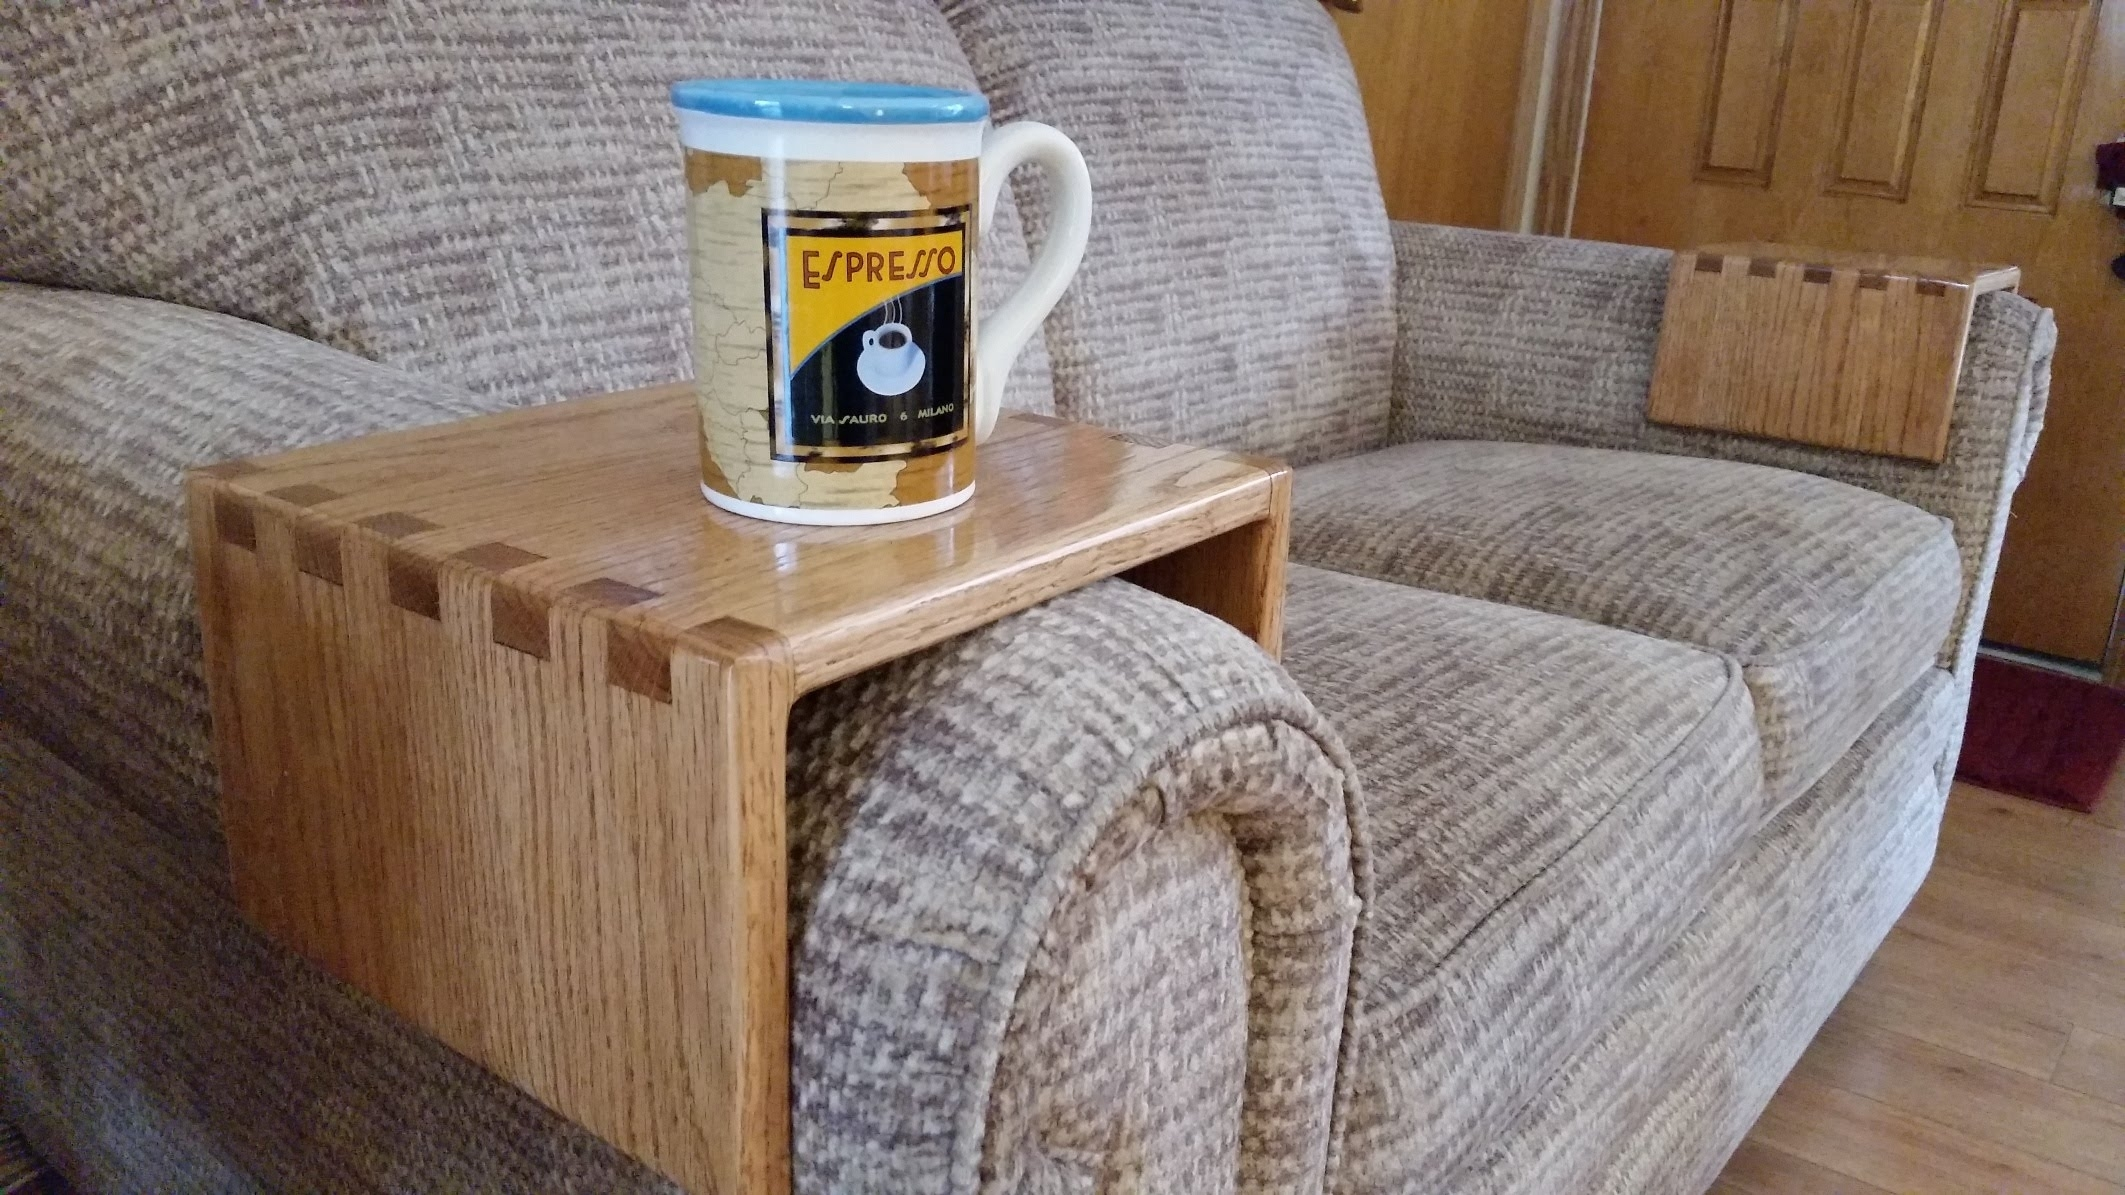 Diy – Sofa Drink Holder Using Simple Box Joints - Youtube with regard to Sofas With Drink Tables (Image 3 of 10)